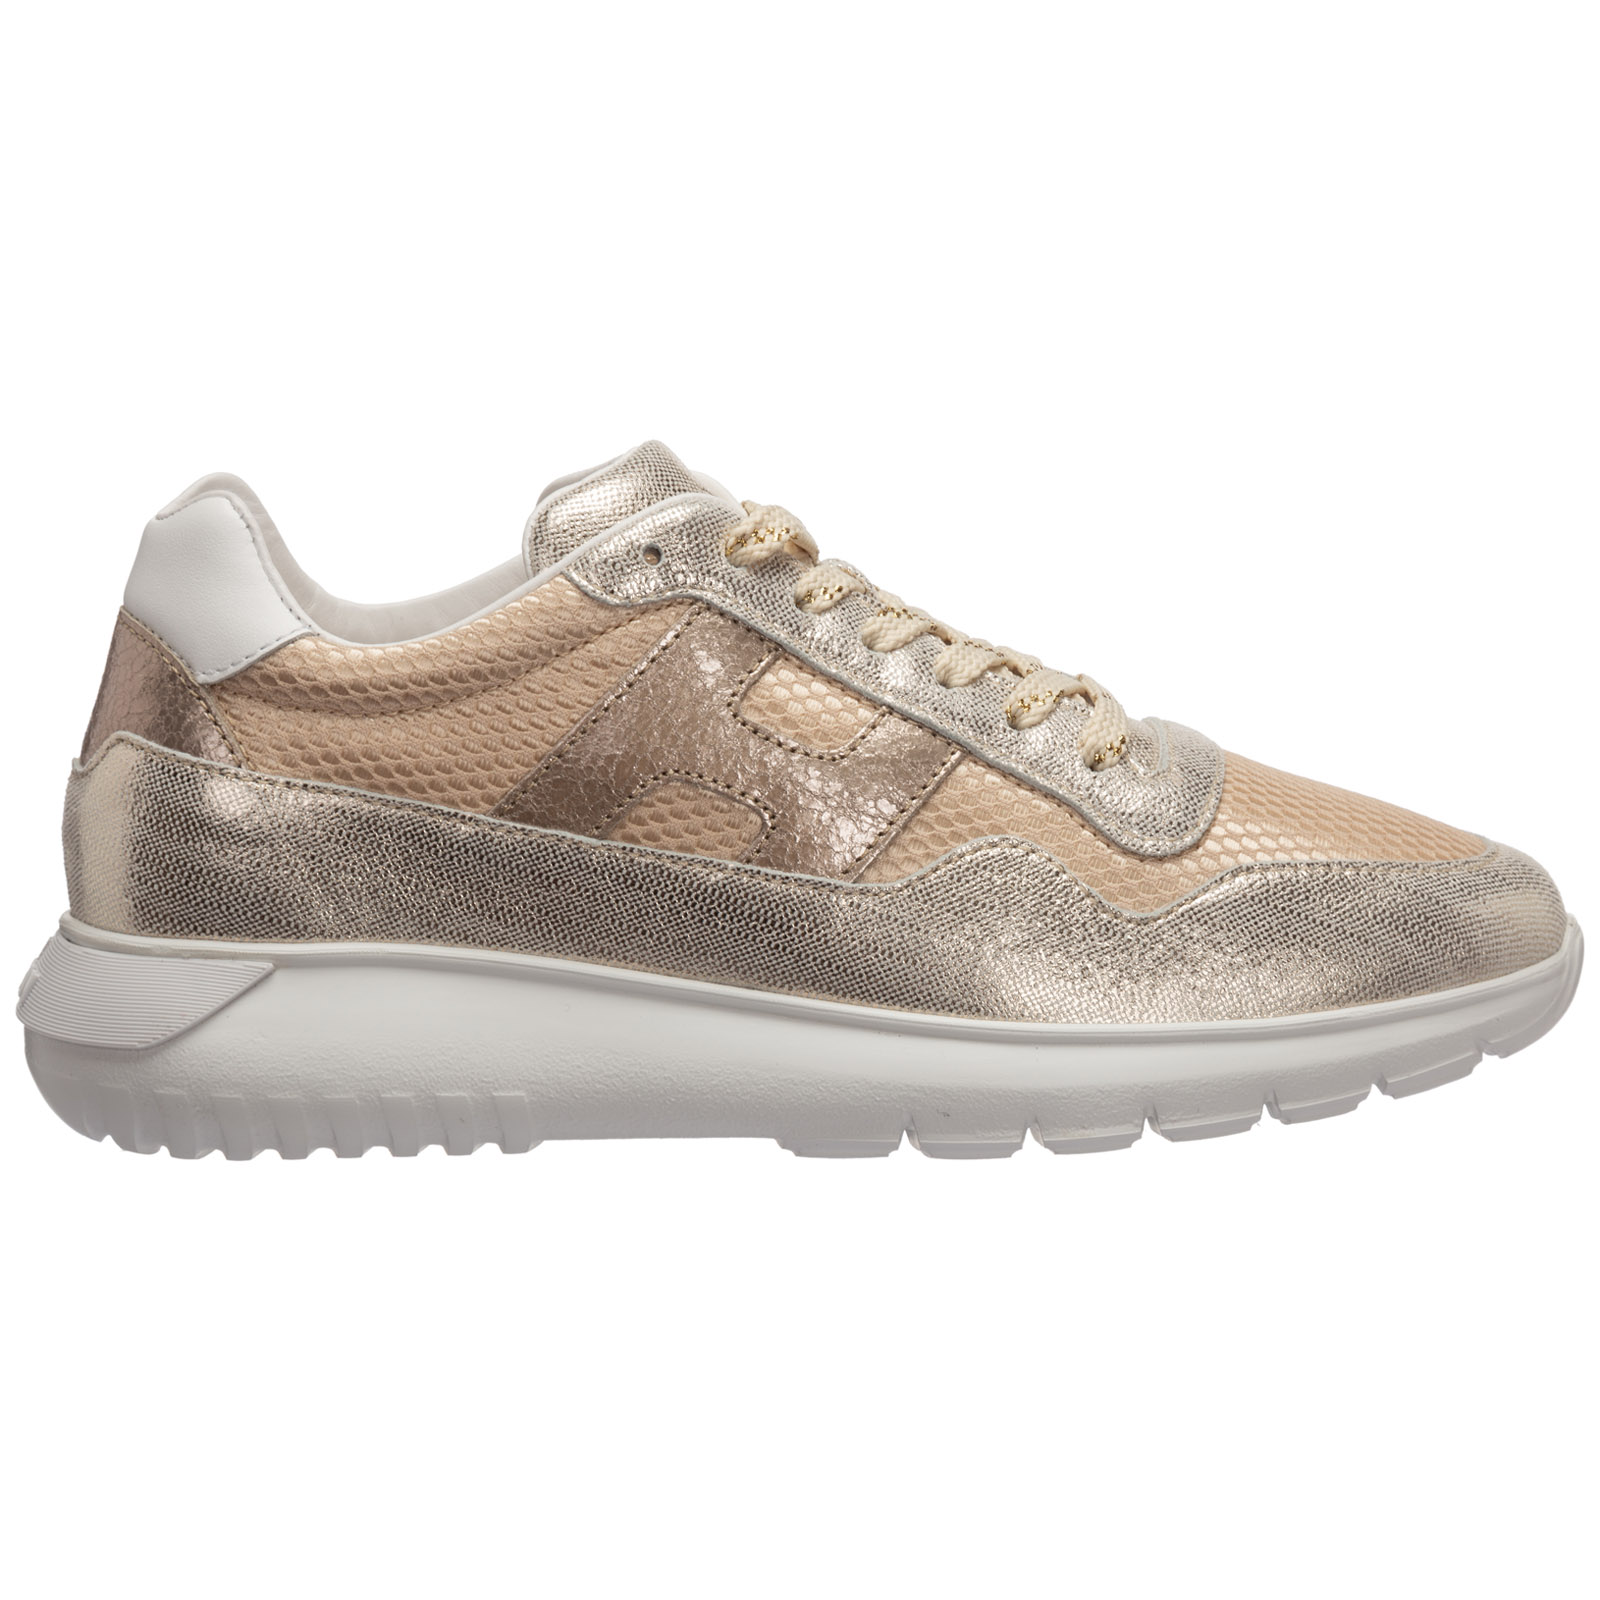 Women's shoes trainers sneakers interactive3